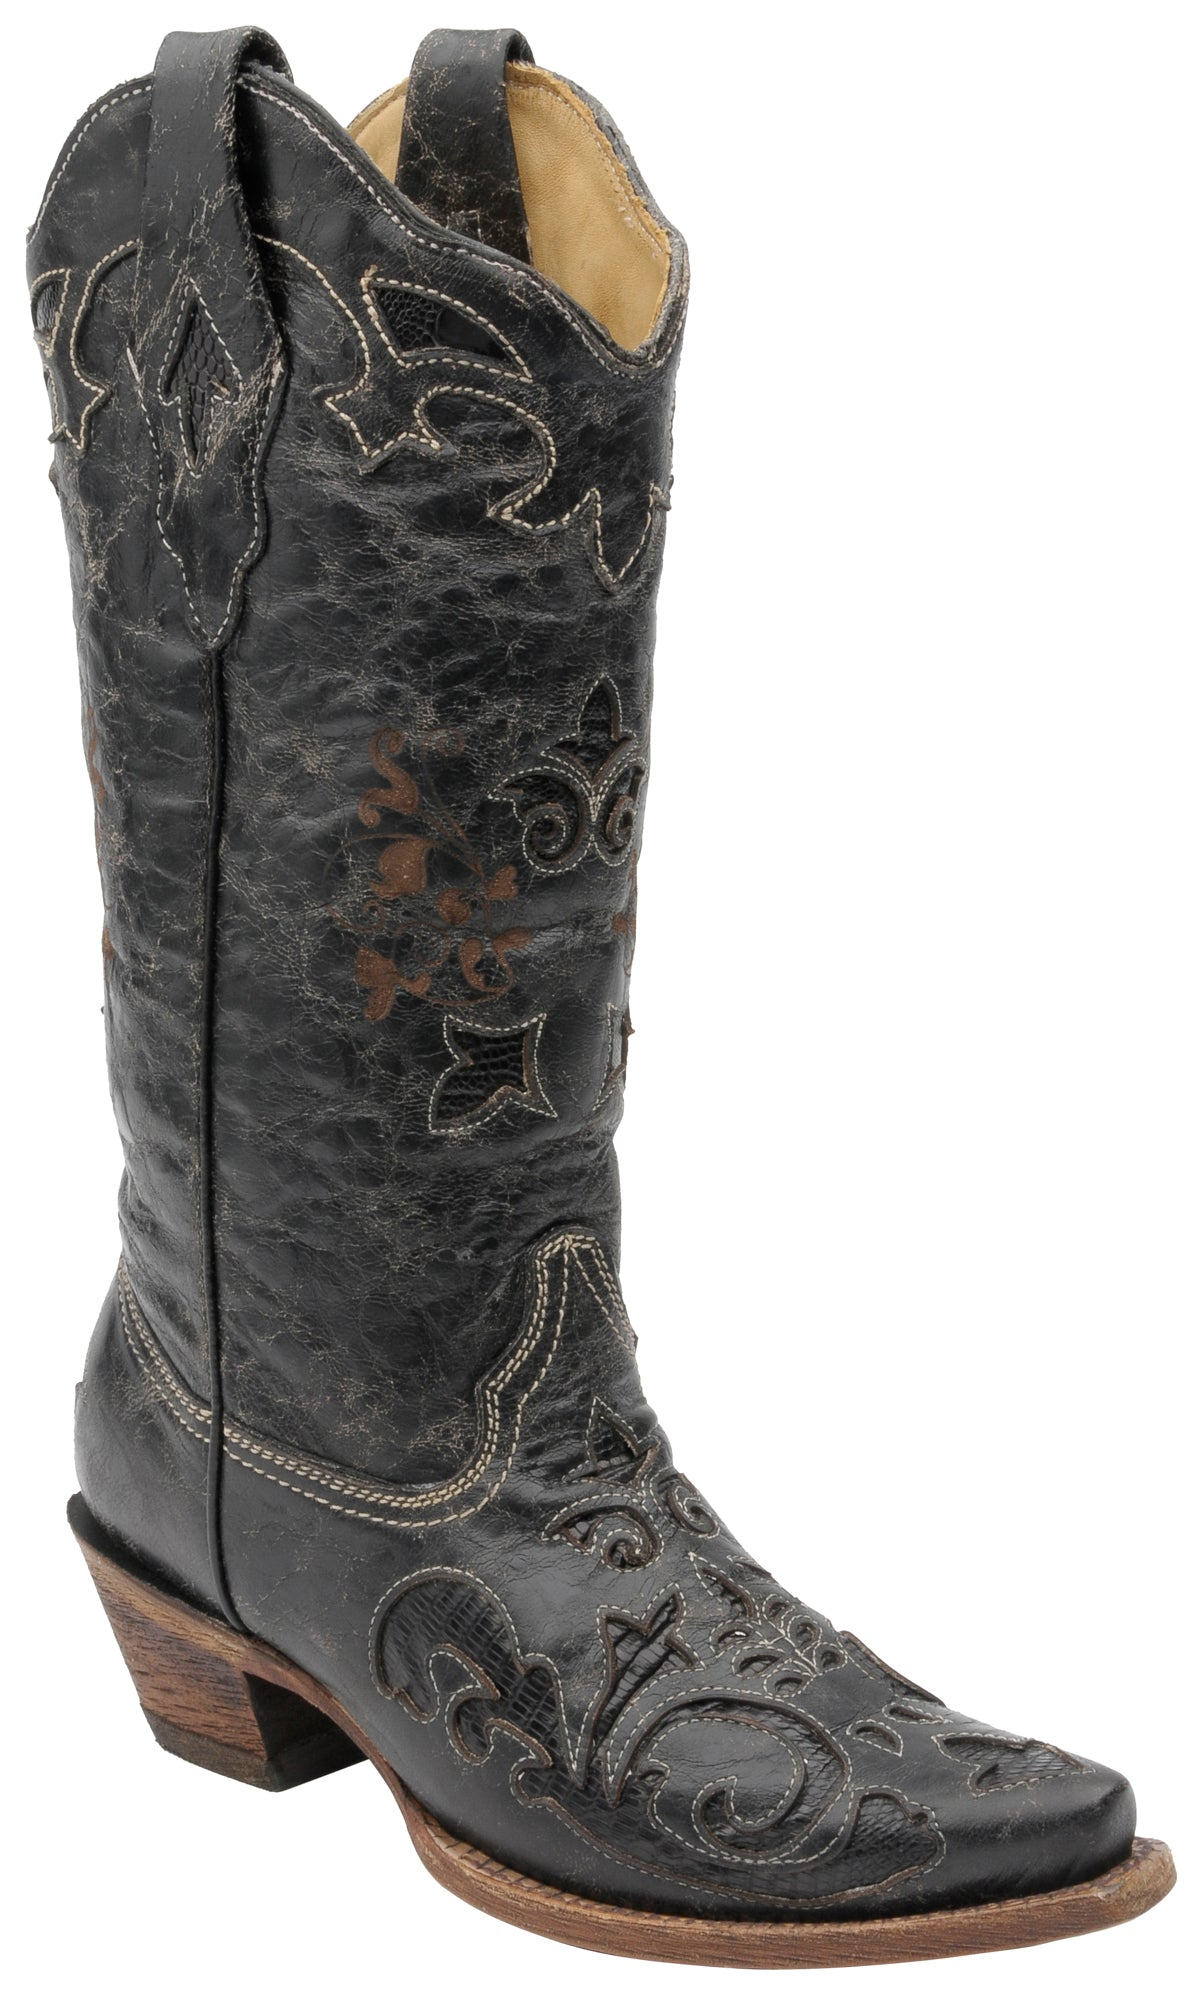 Corral Boots Womens Leather Lizard